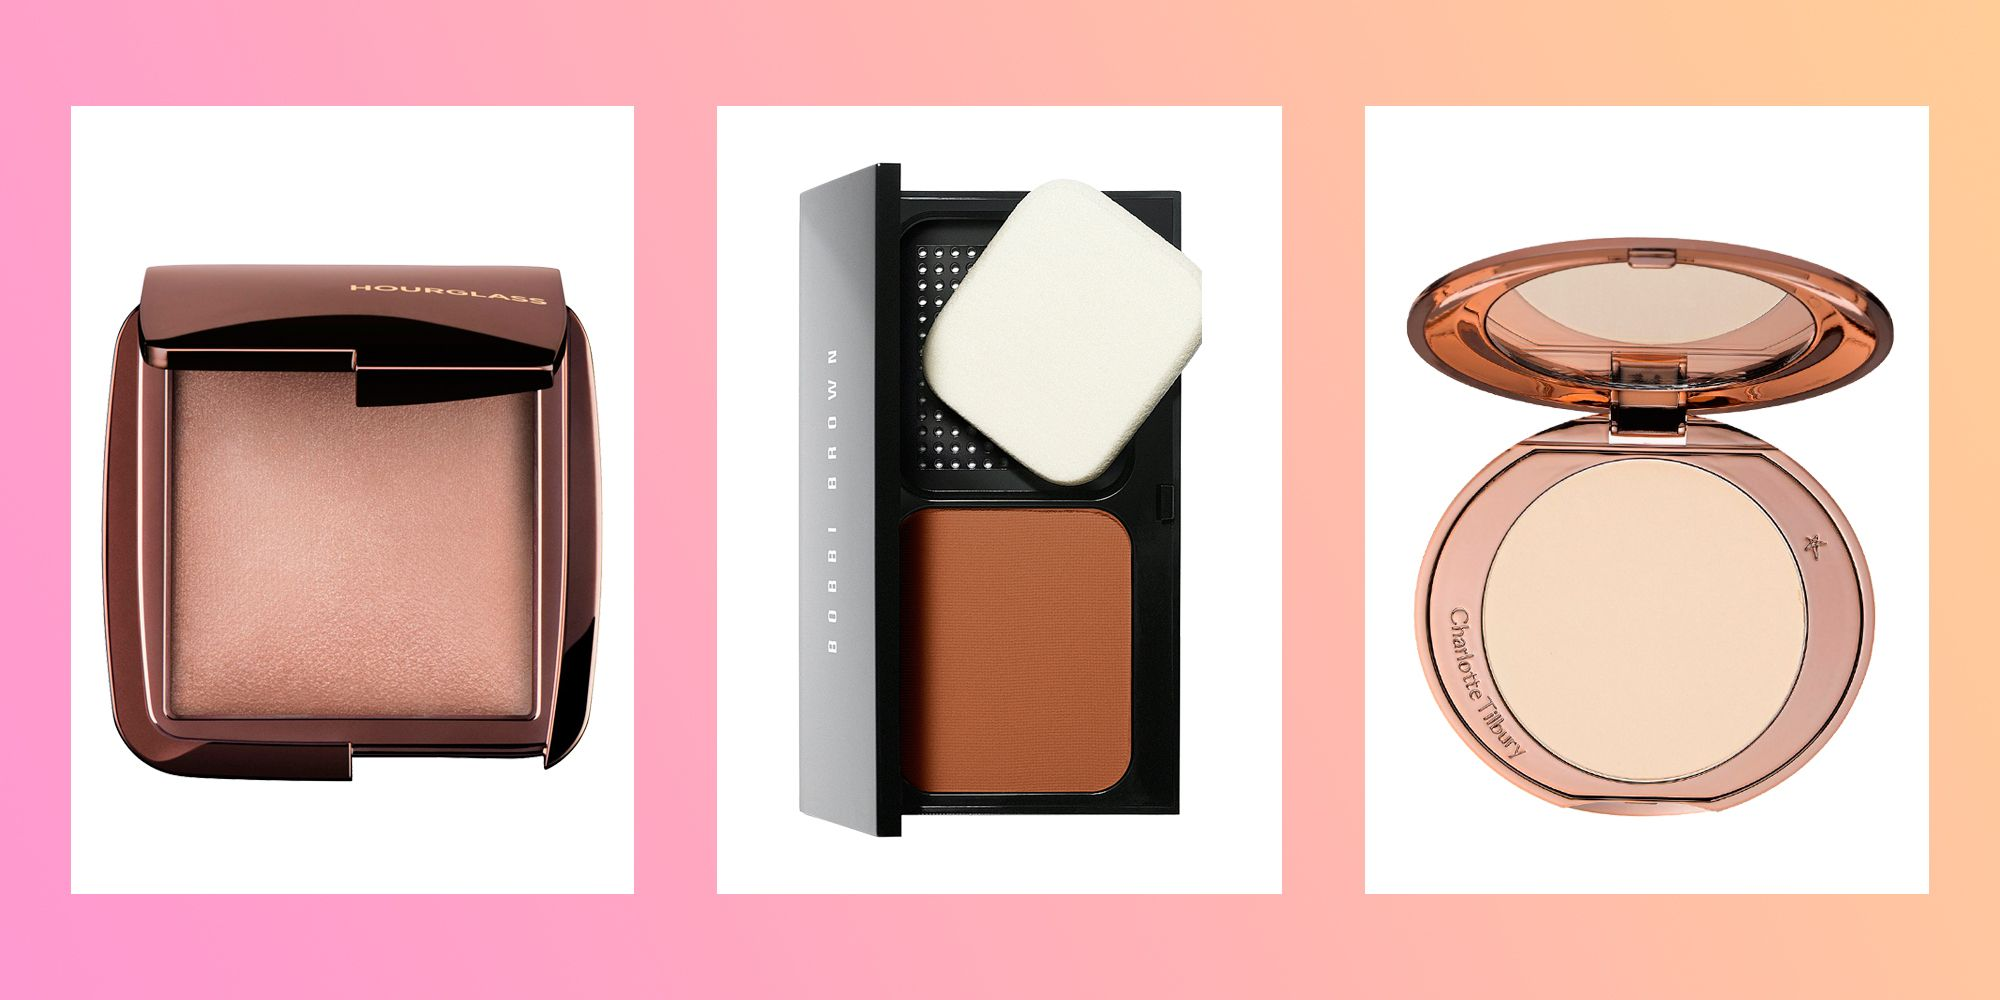 Topshop has relaunched their entire beauty line